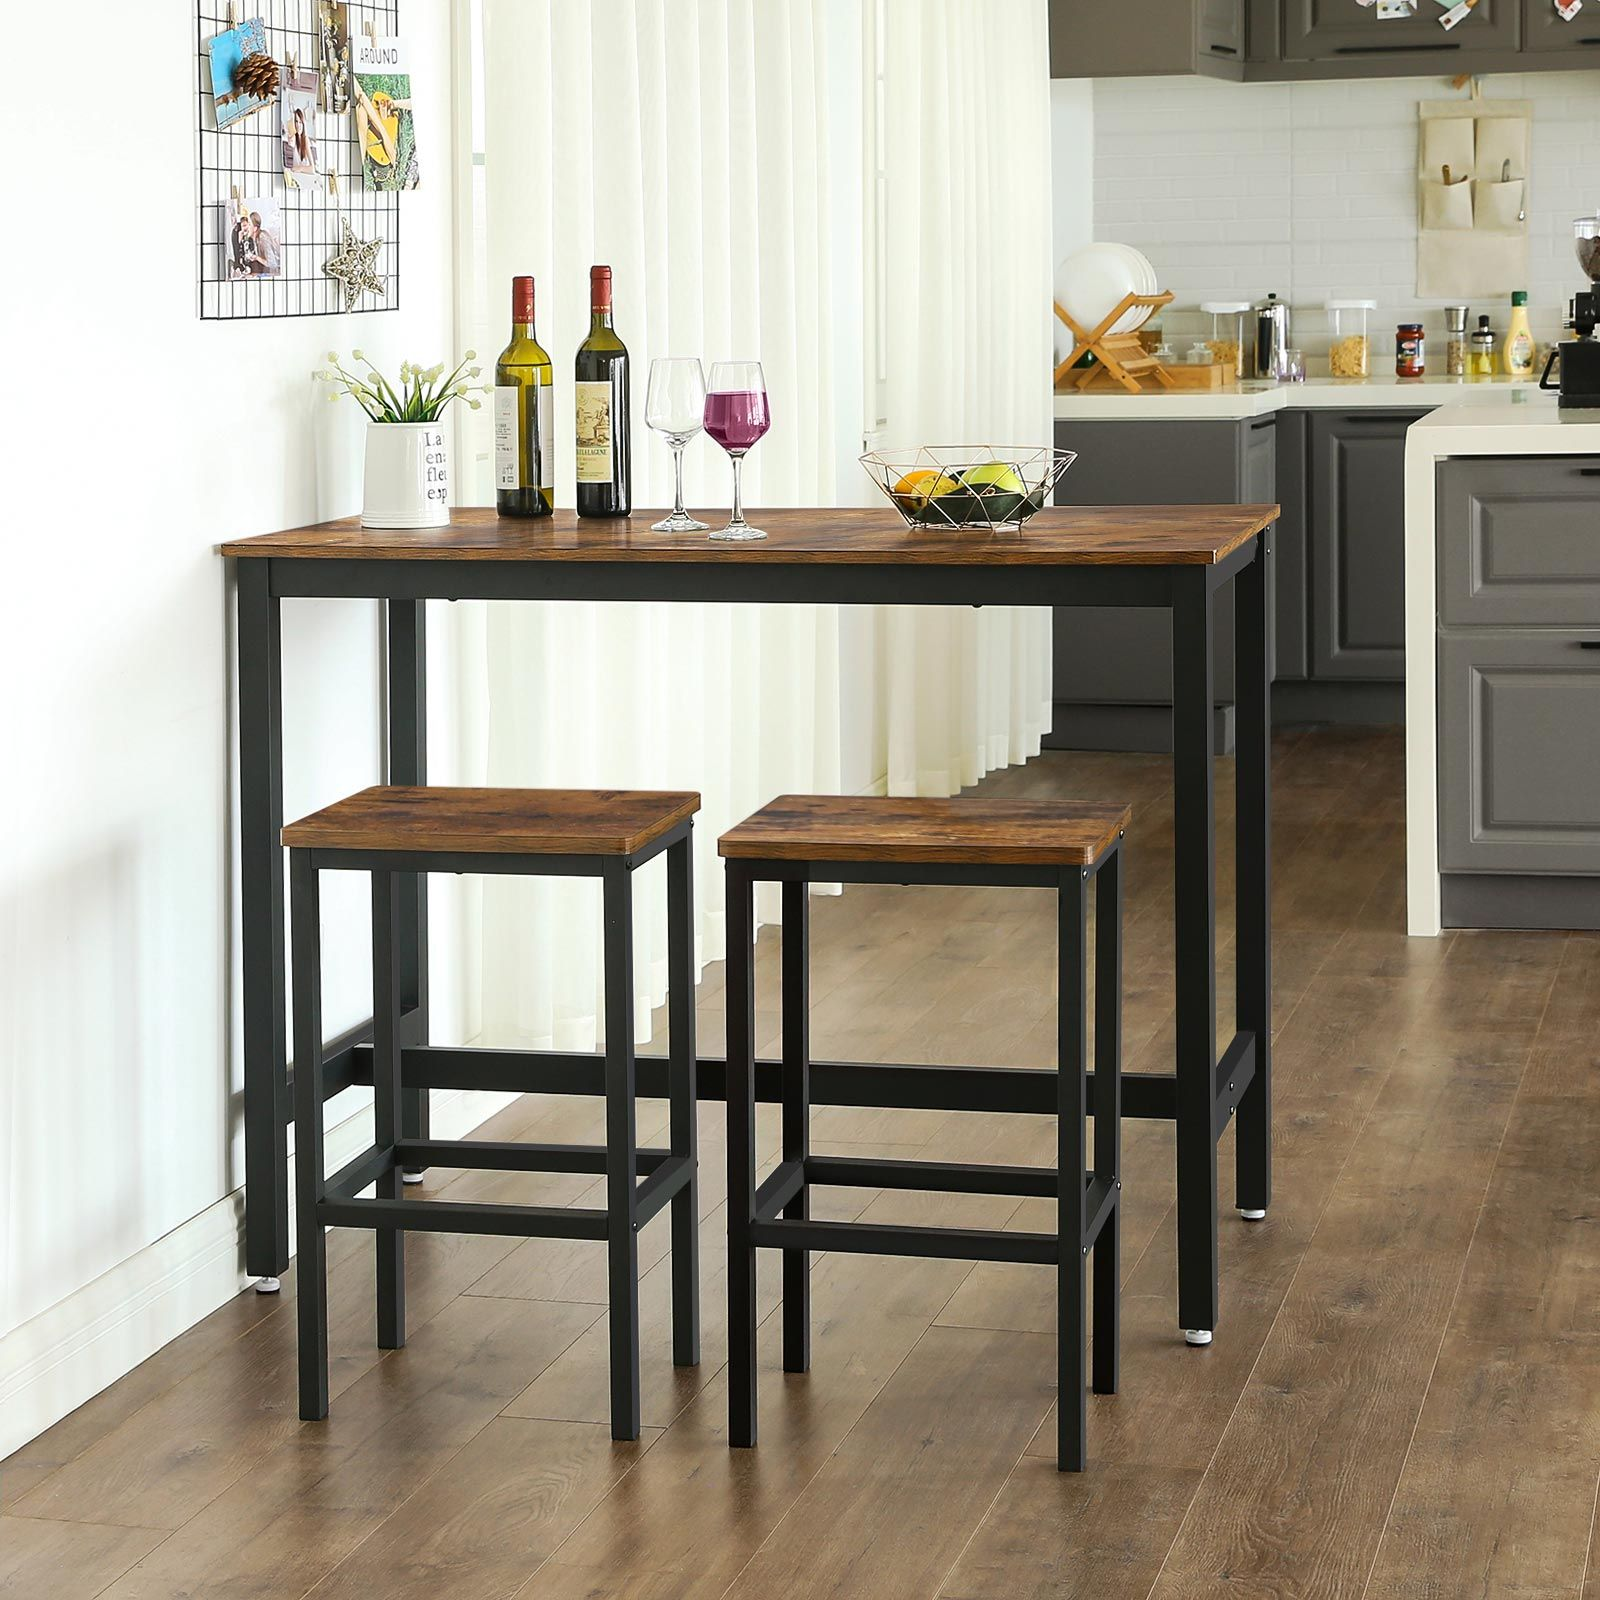 Industrial Bar Table Set Bar Table In 2020 Kitchen Bar Table Breakfast Bar Table Dining Table In Kitchen